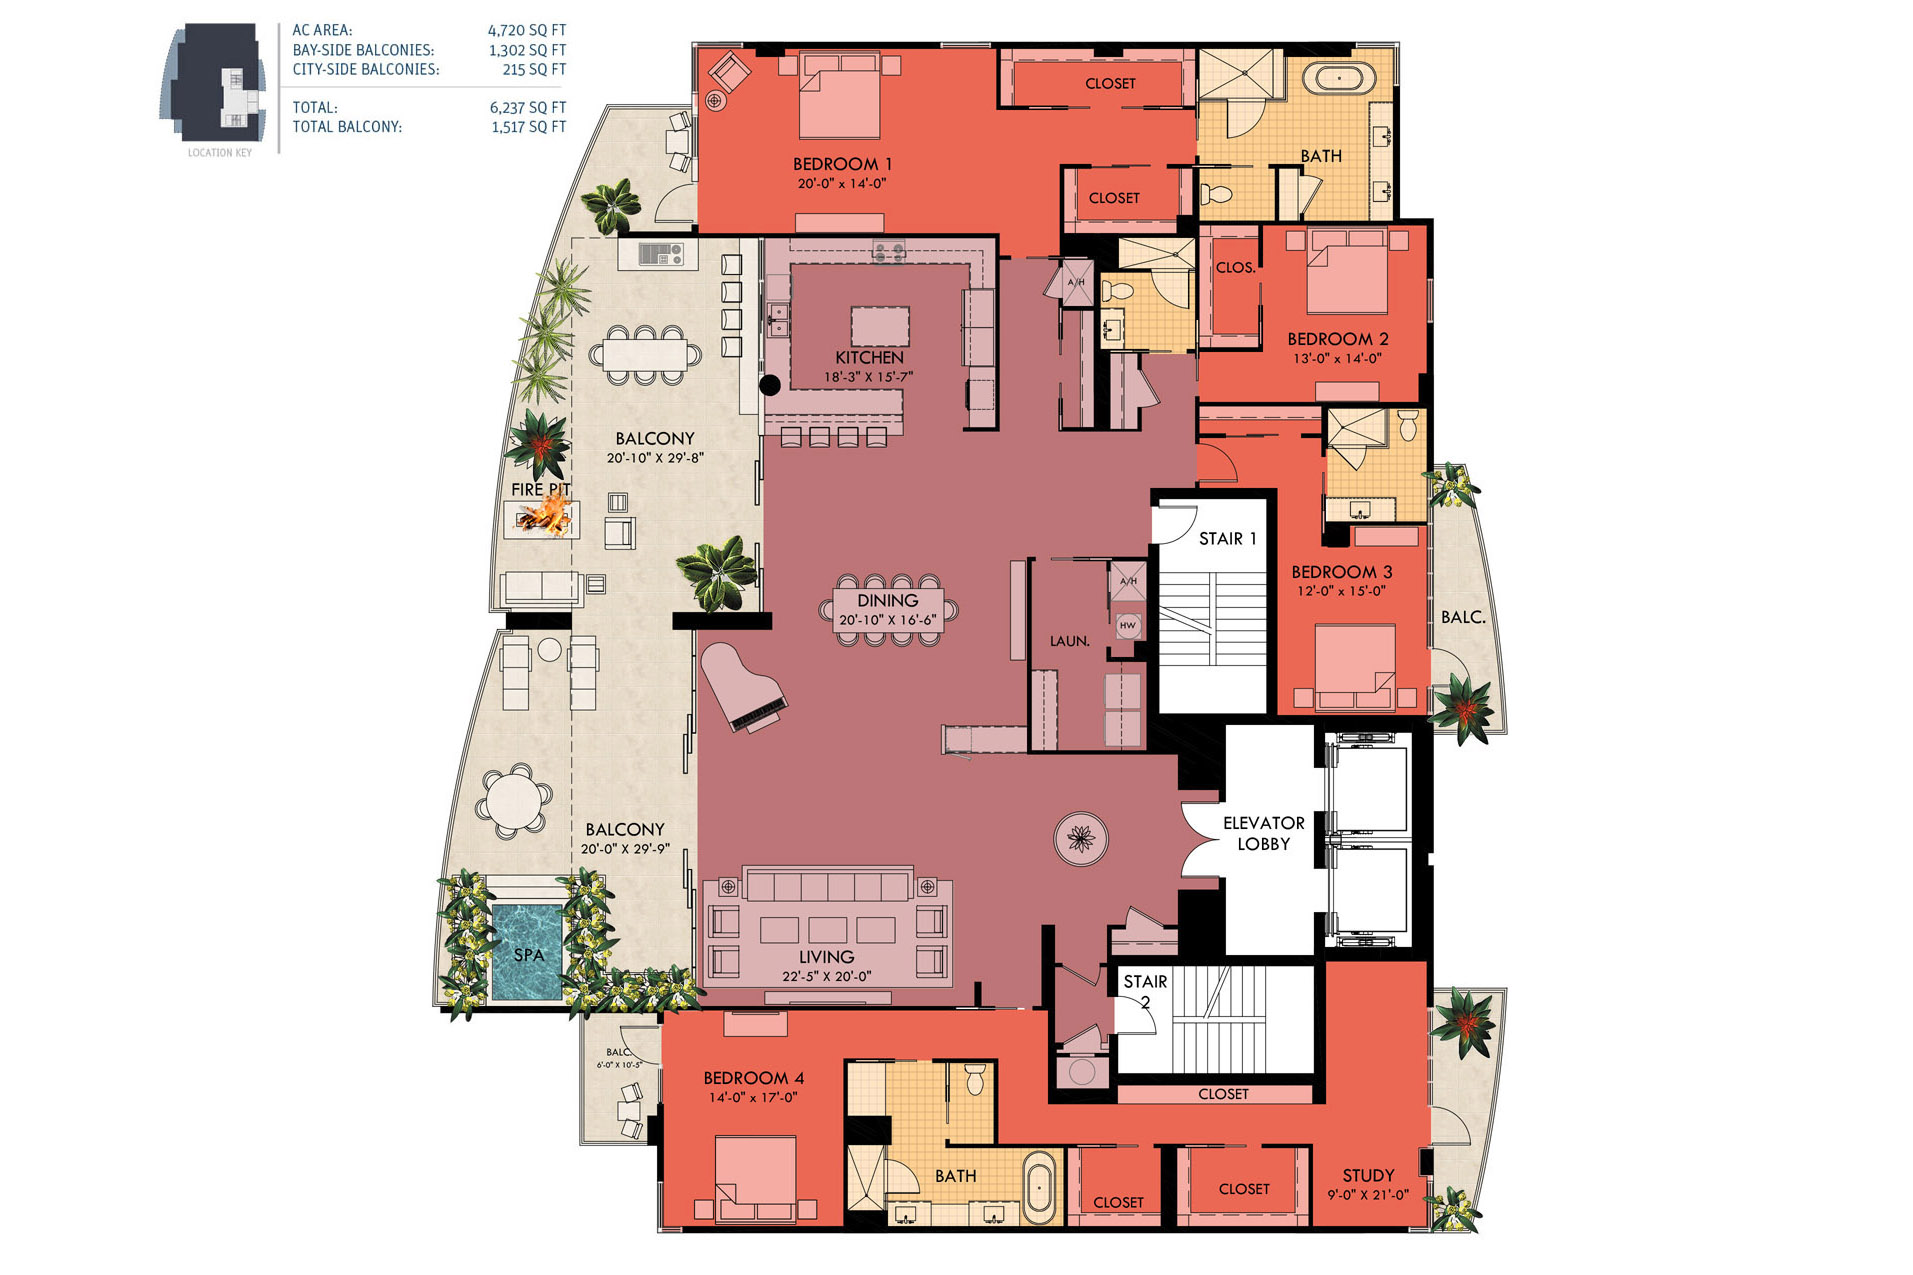 Sansara condos in sarasota luxury bay view condosnew for Condominium floor plan